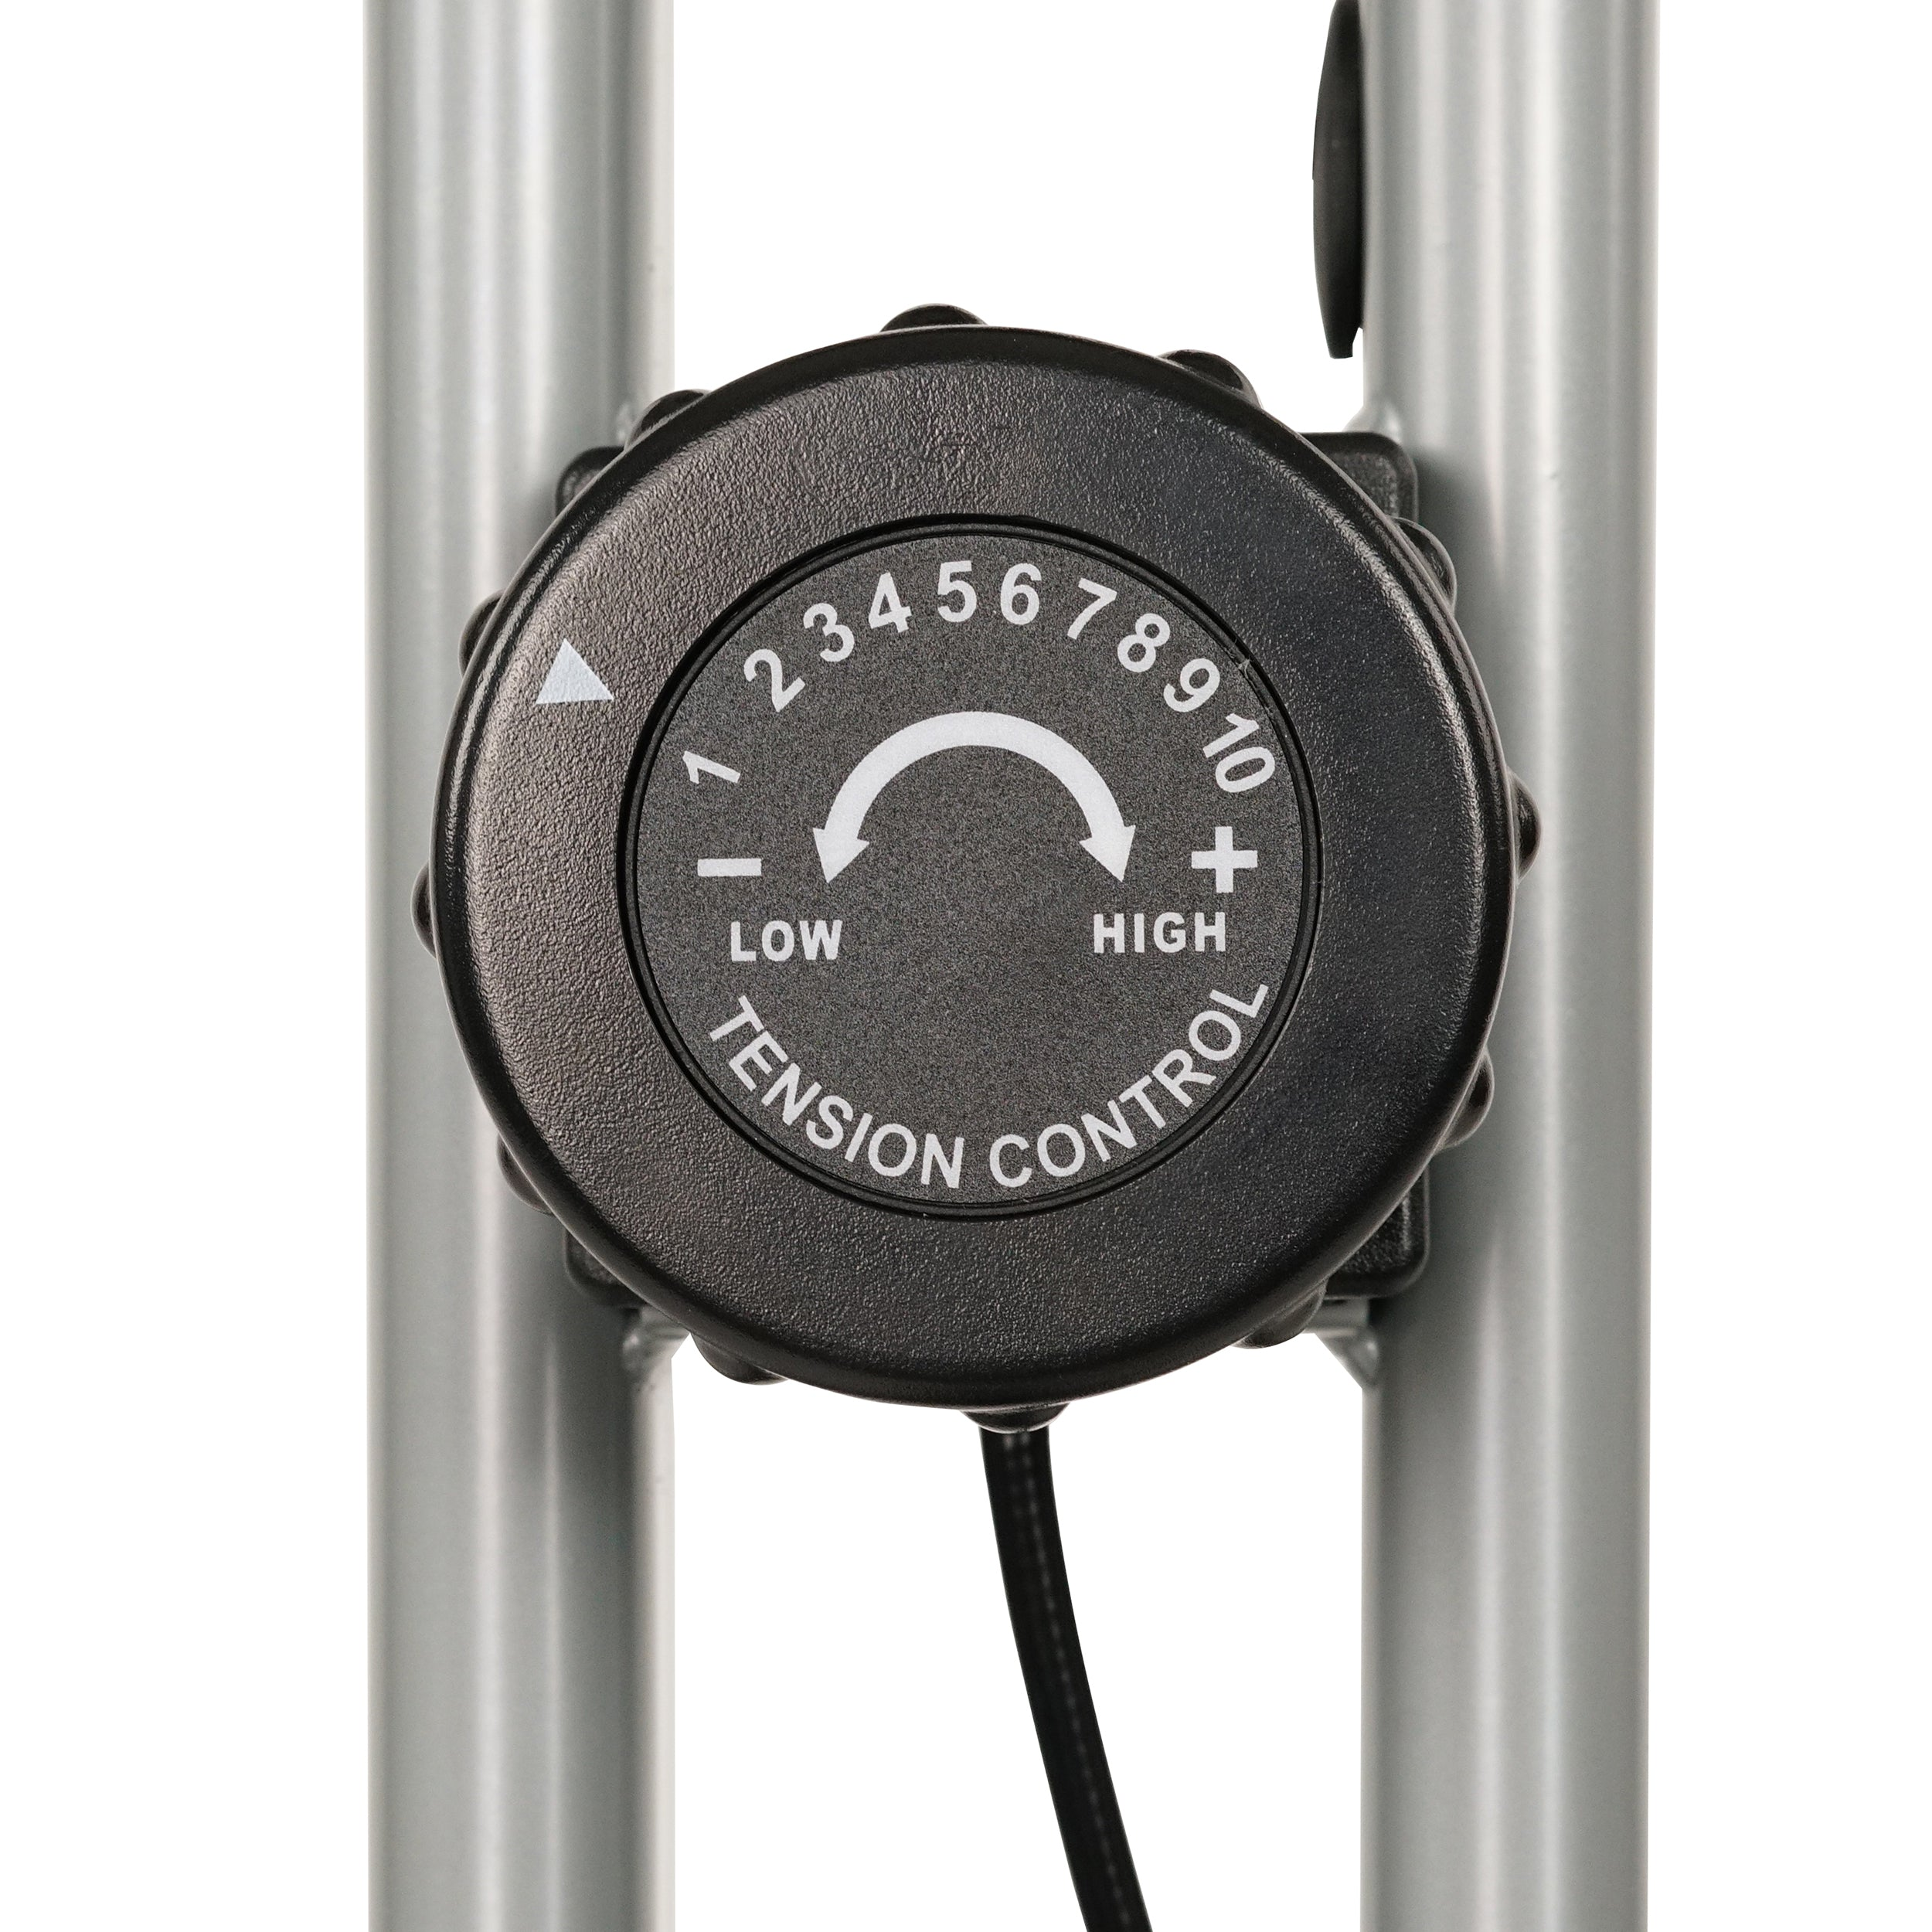 SF-B2721-AdjustableKnob.JPG